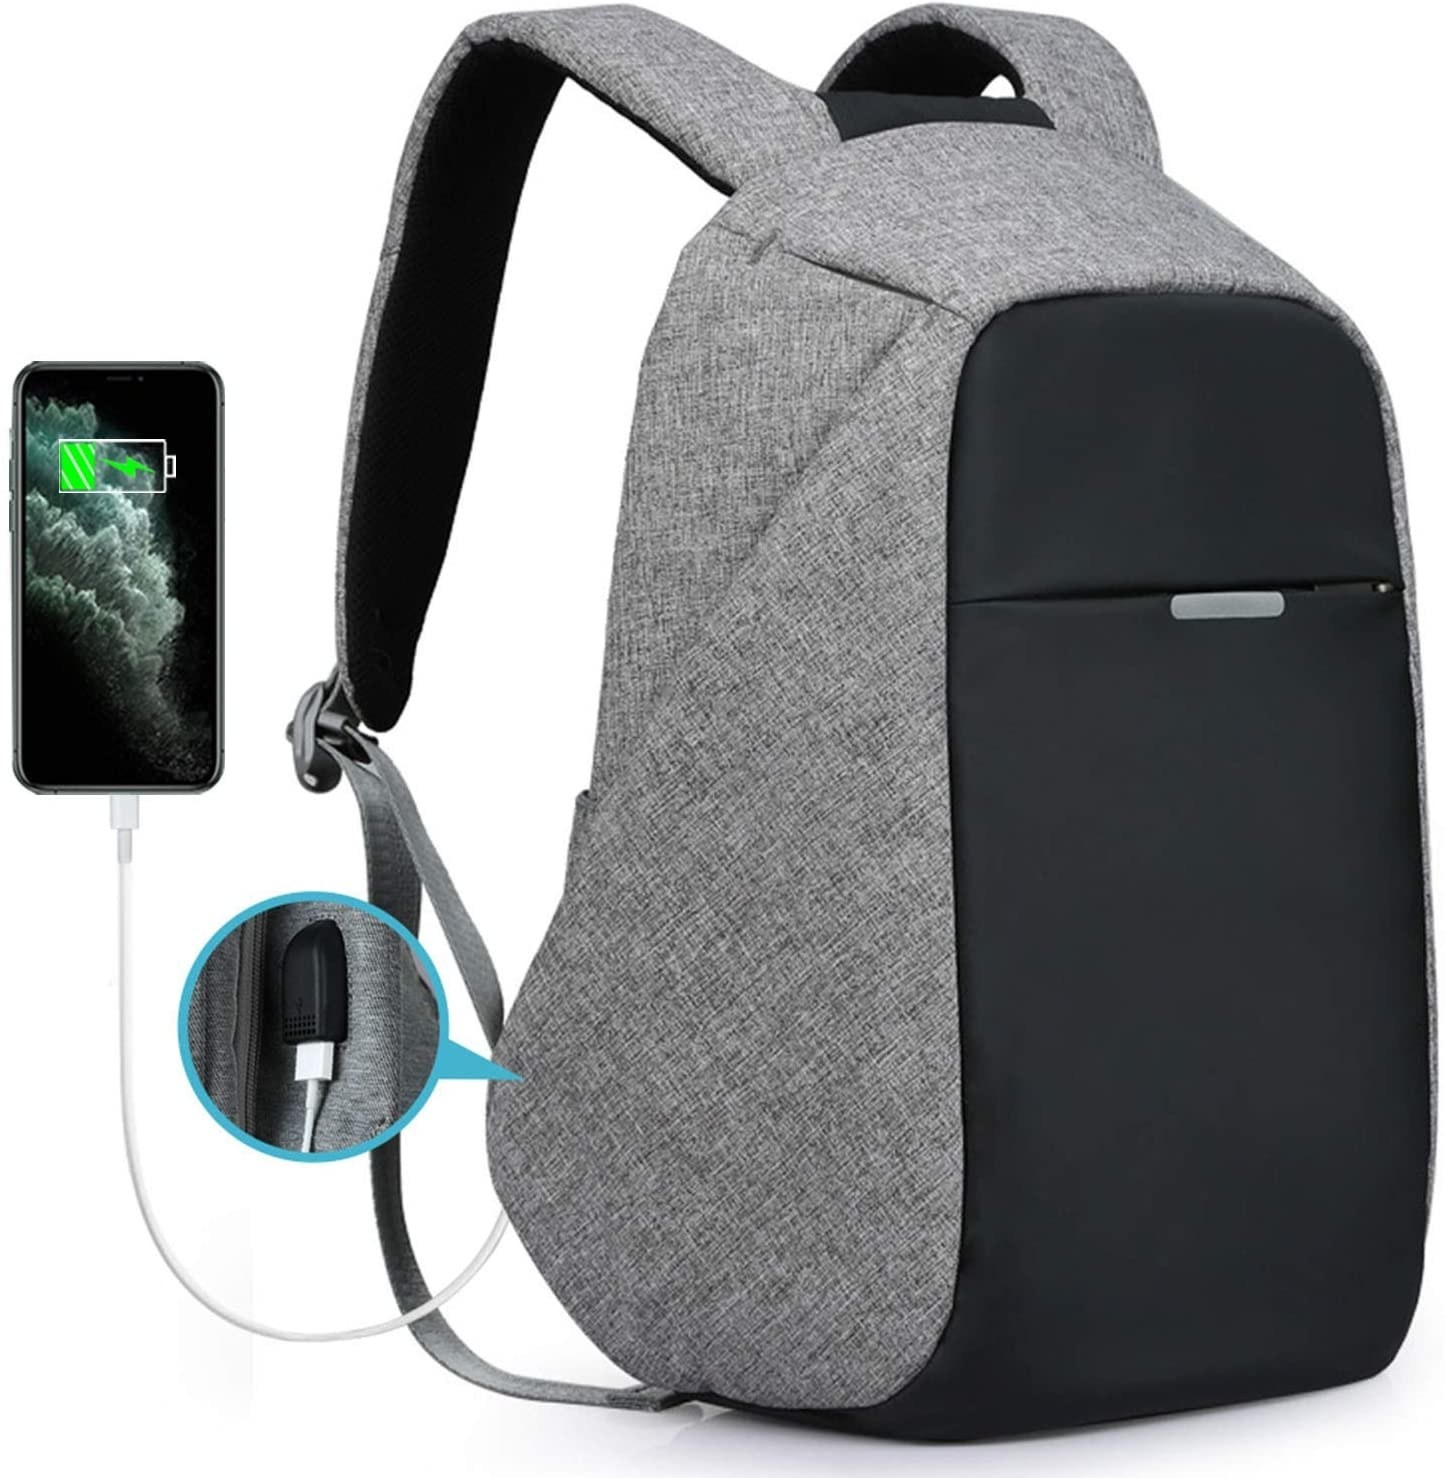 Anti-theft backpack with place to charge your phone